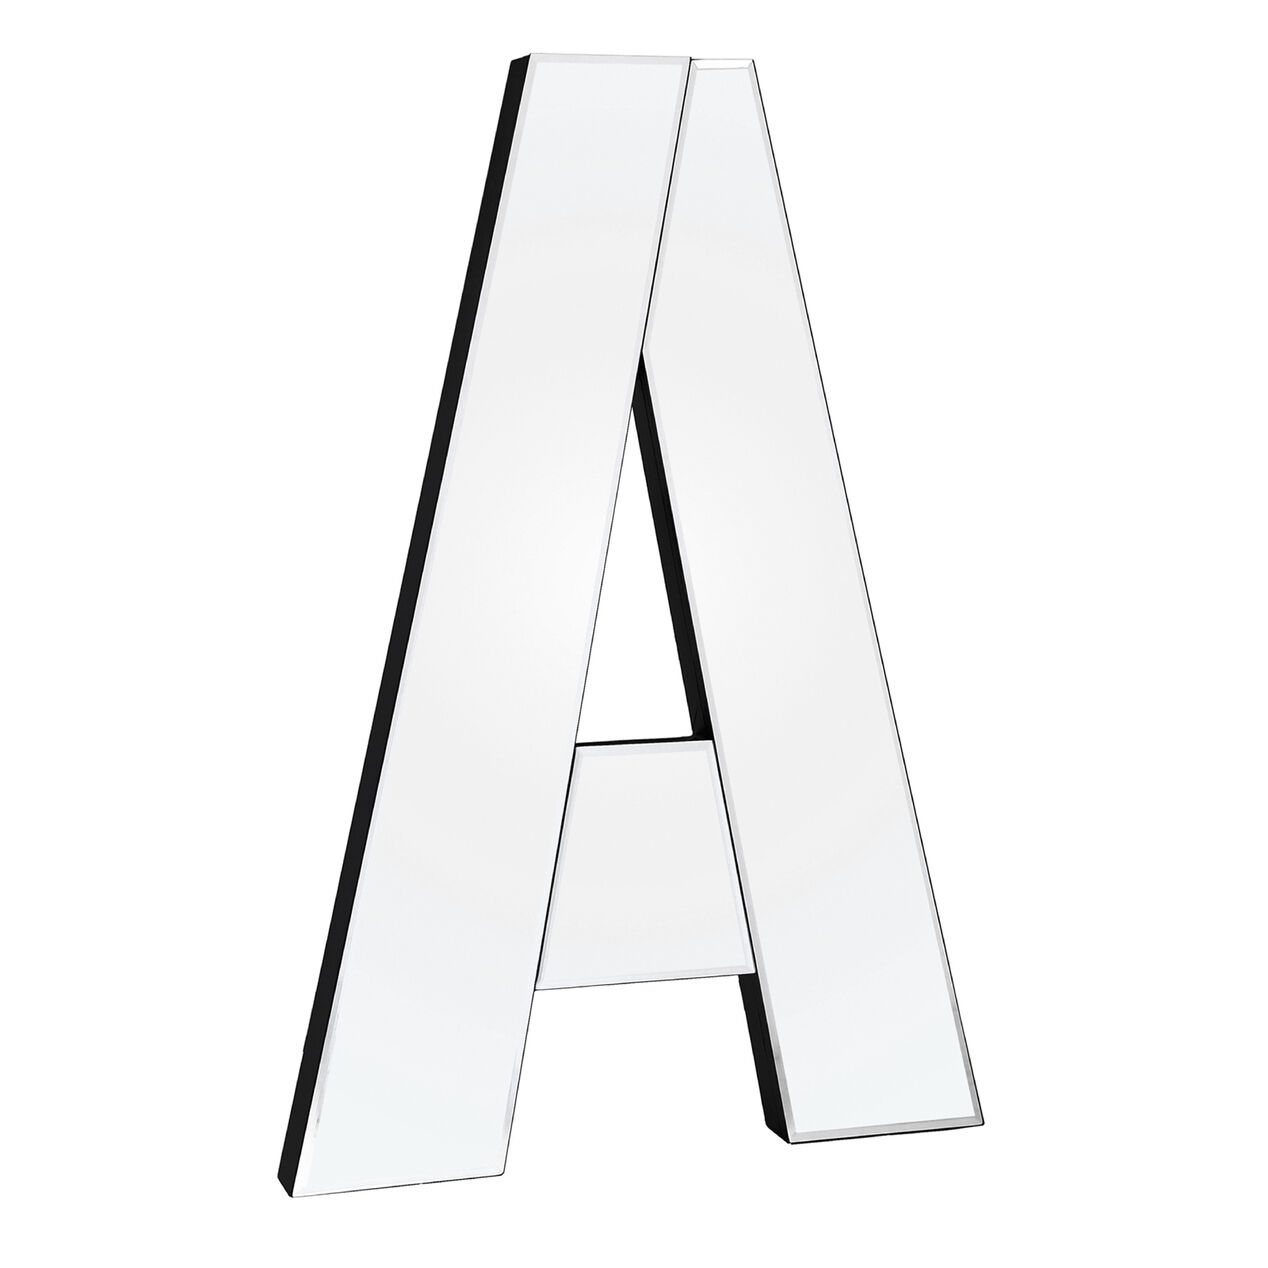 A Large Mirror Letter